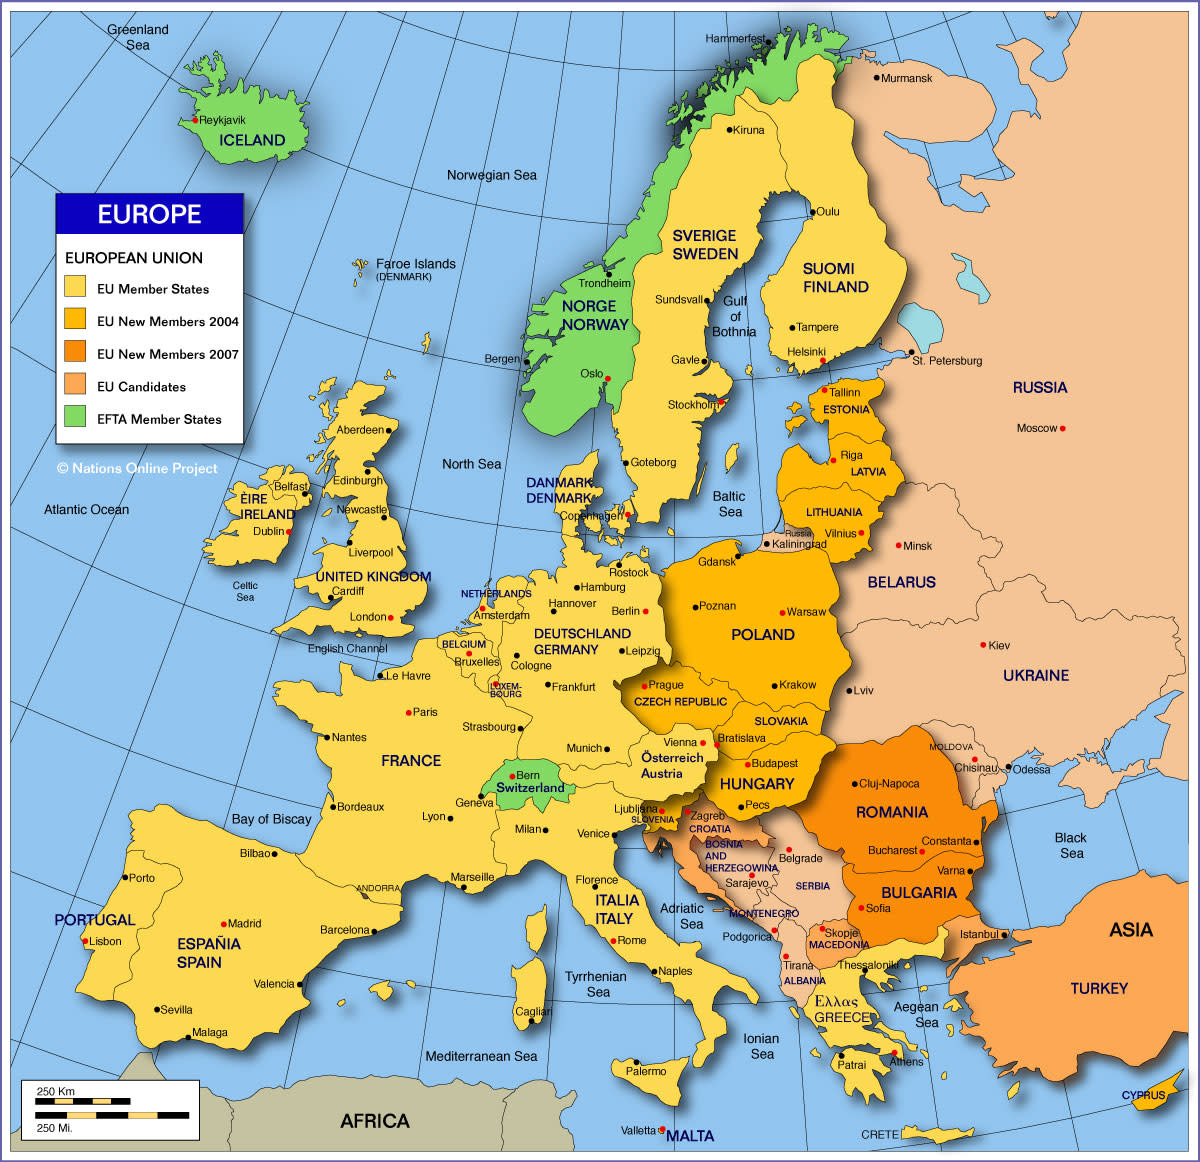 Make sure you have a good map of Europe to plan your trip.